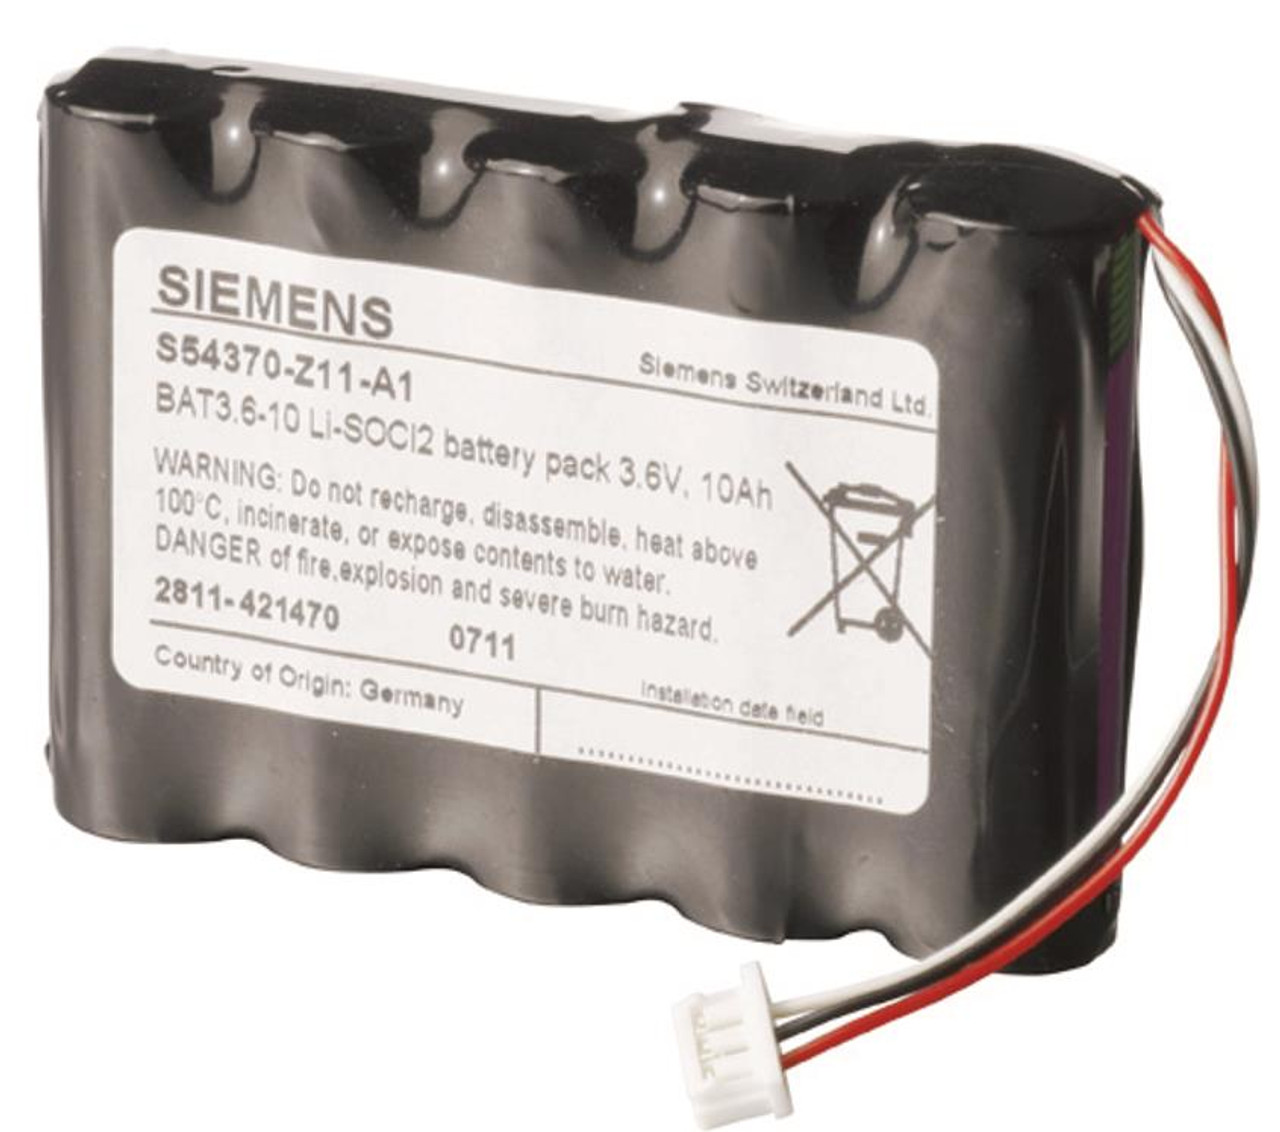 Siemens BAT3.6-10, S54370-Z11-A1, Li-SOCI2 battery 3.6 V, 10 Ah